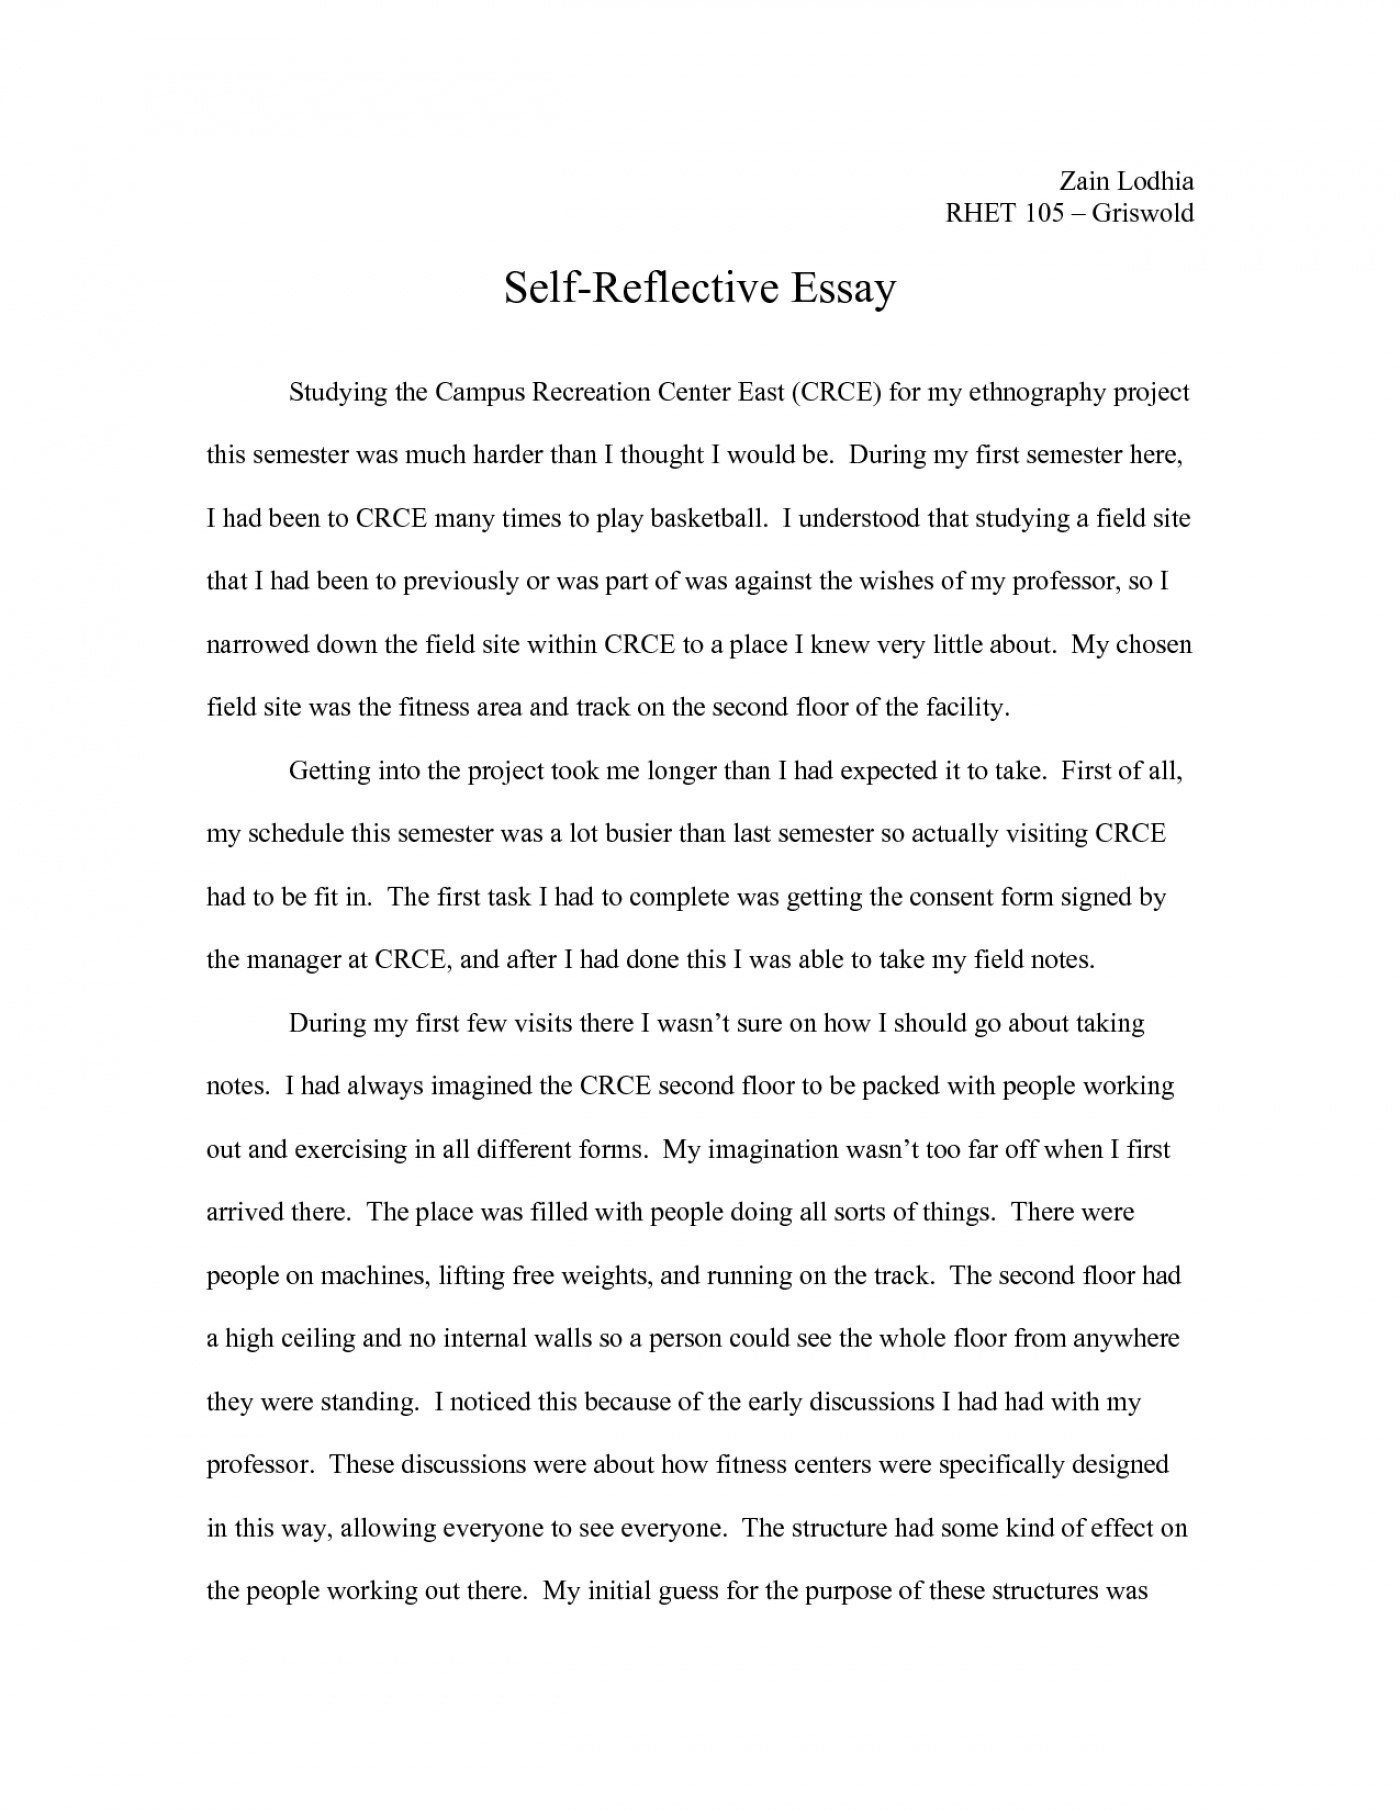 007 Essay Example Qal0pwnf46 Good Fascinating Examples University Explanatory For Middle School Introduction 1400